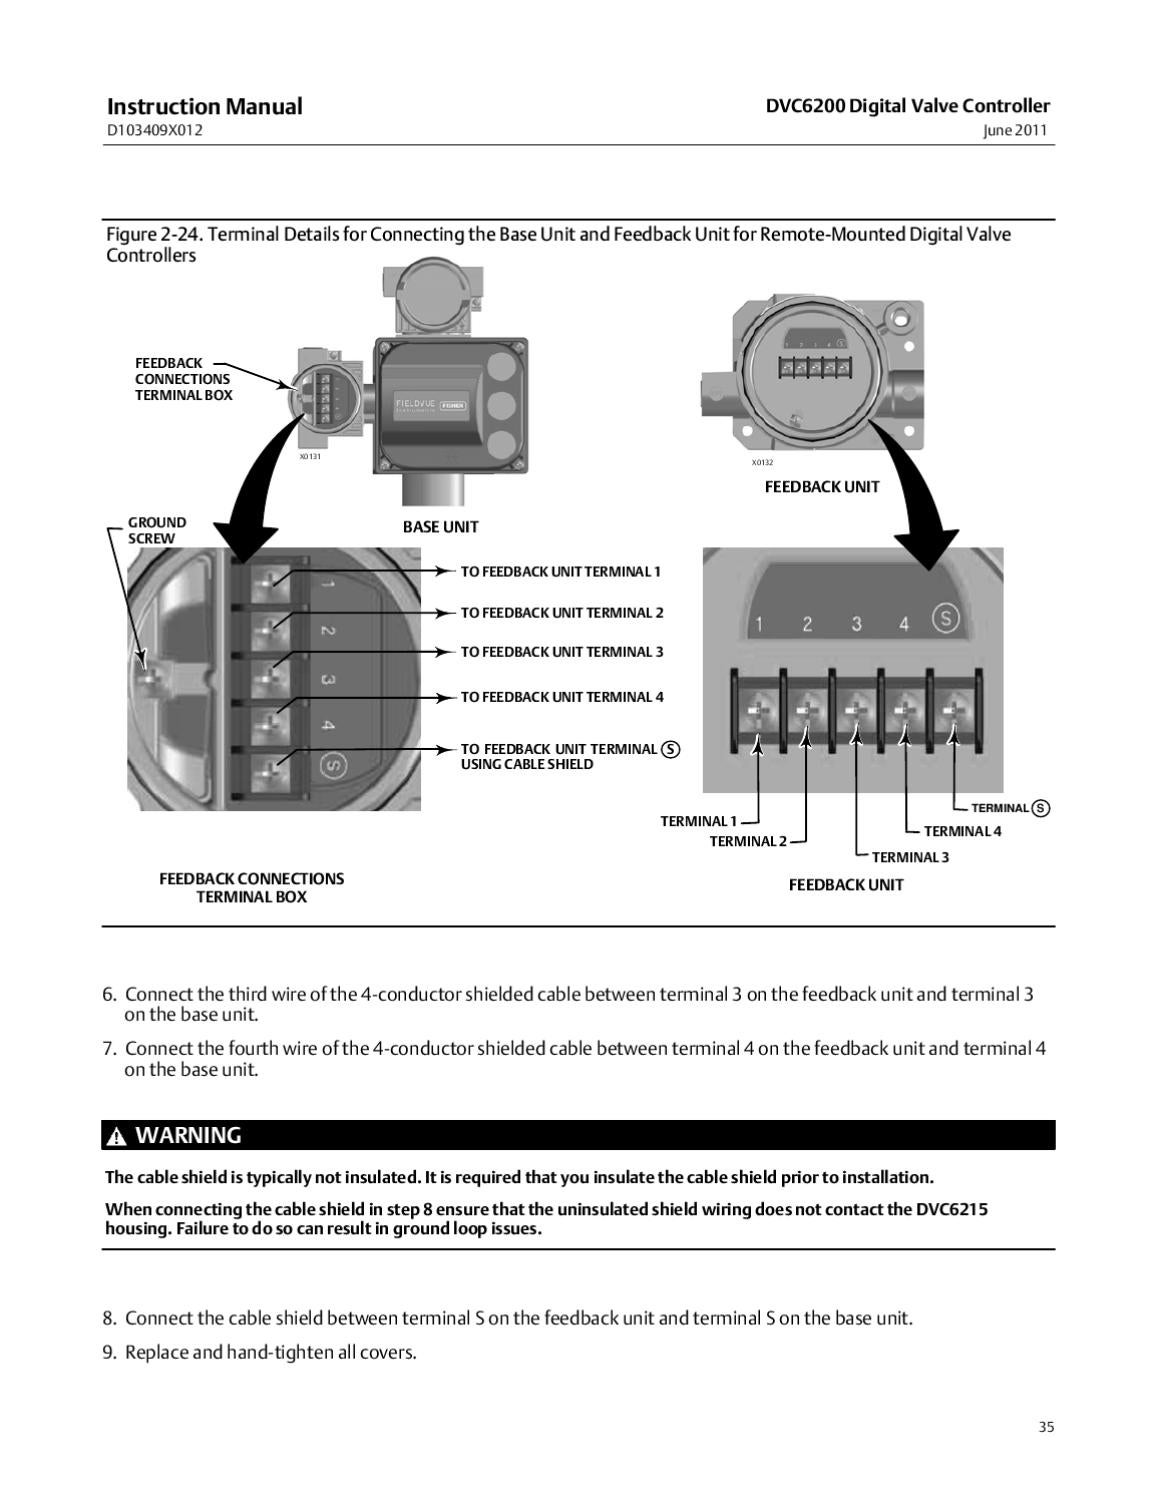 fisher dvc wiring diagram 2006 ford escape trailer dvc6200 blaspheme a light for 2003